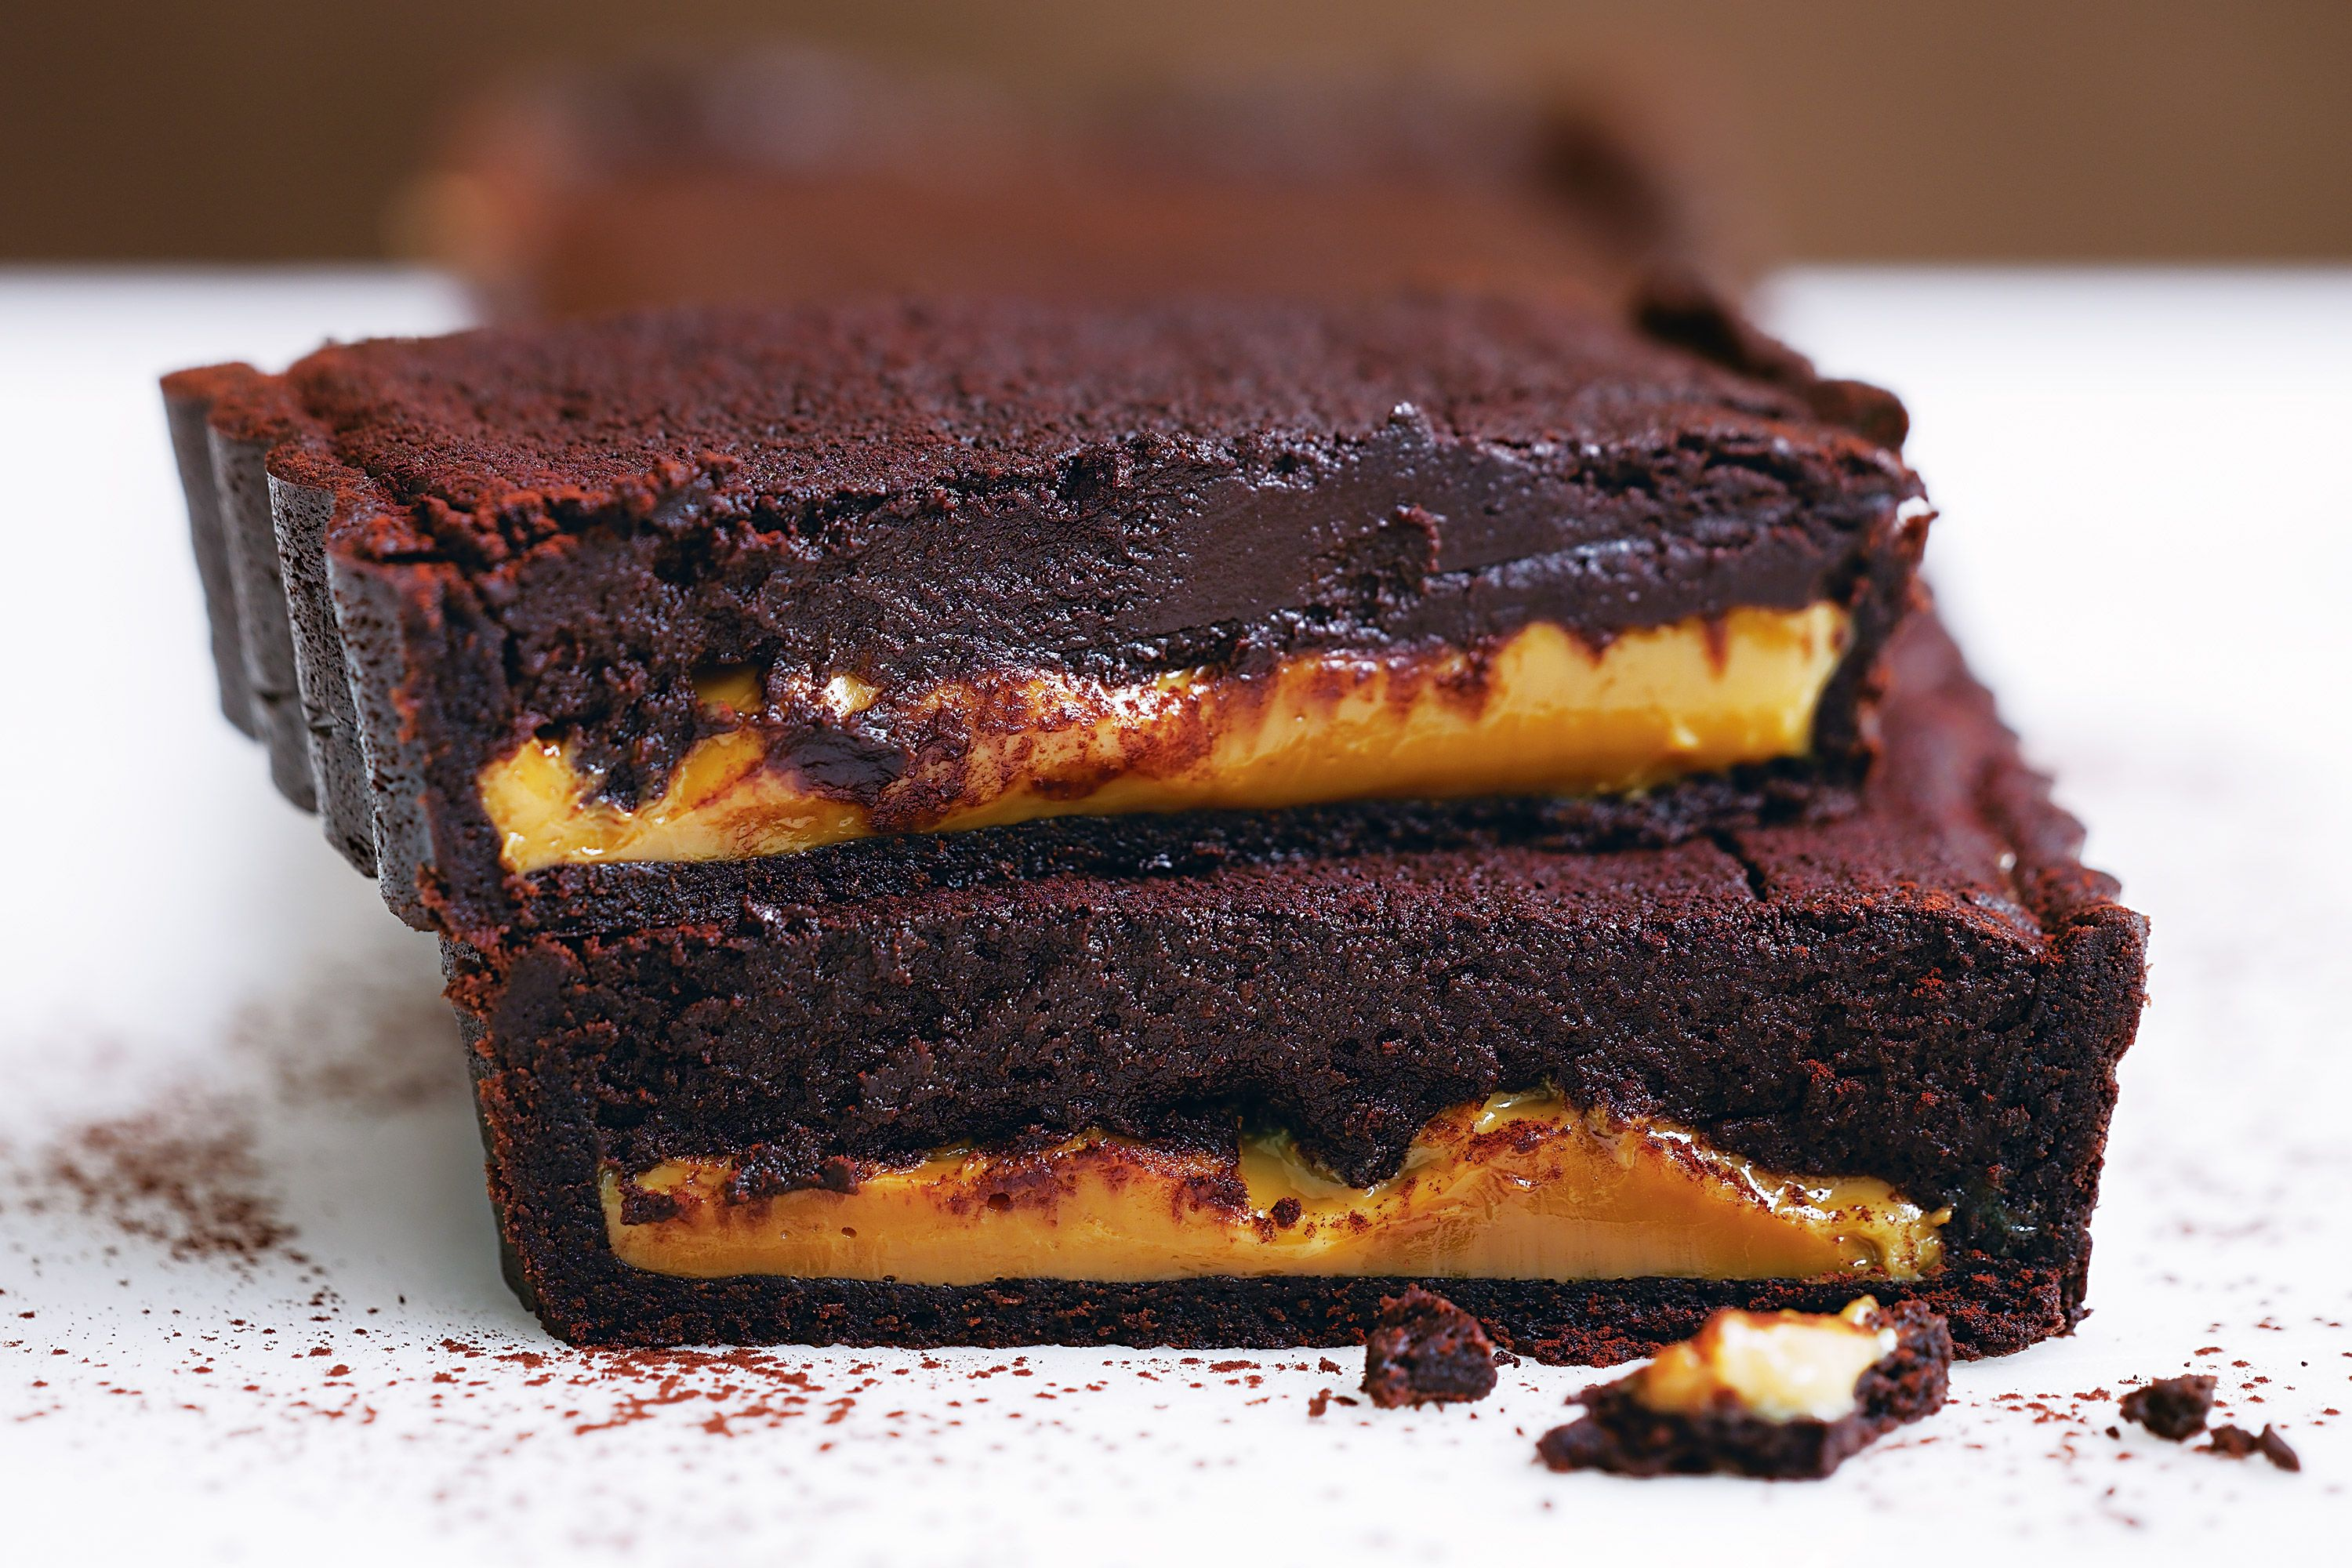 If youre after a delicious decadent treat, you cant beat this combination of chocolate and caramel!